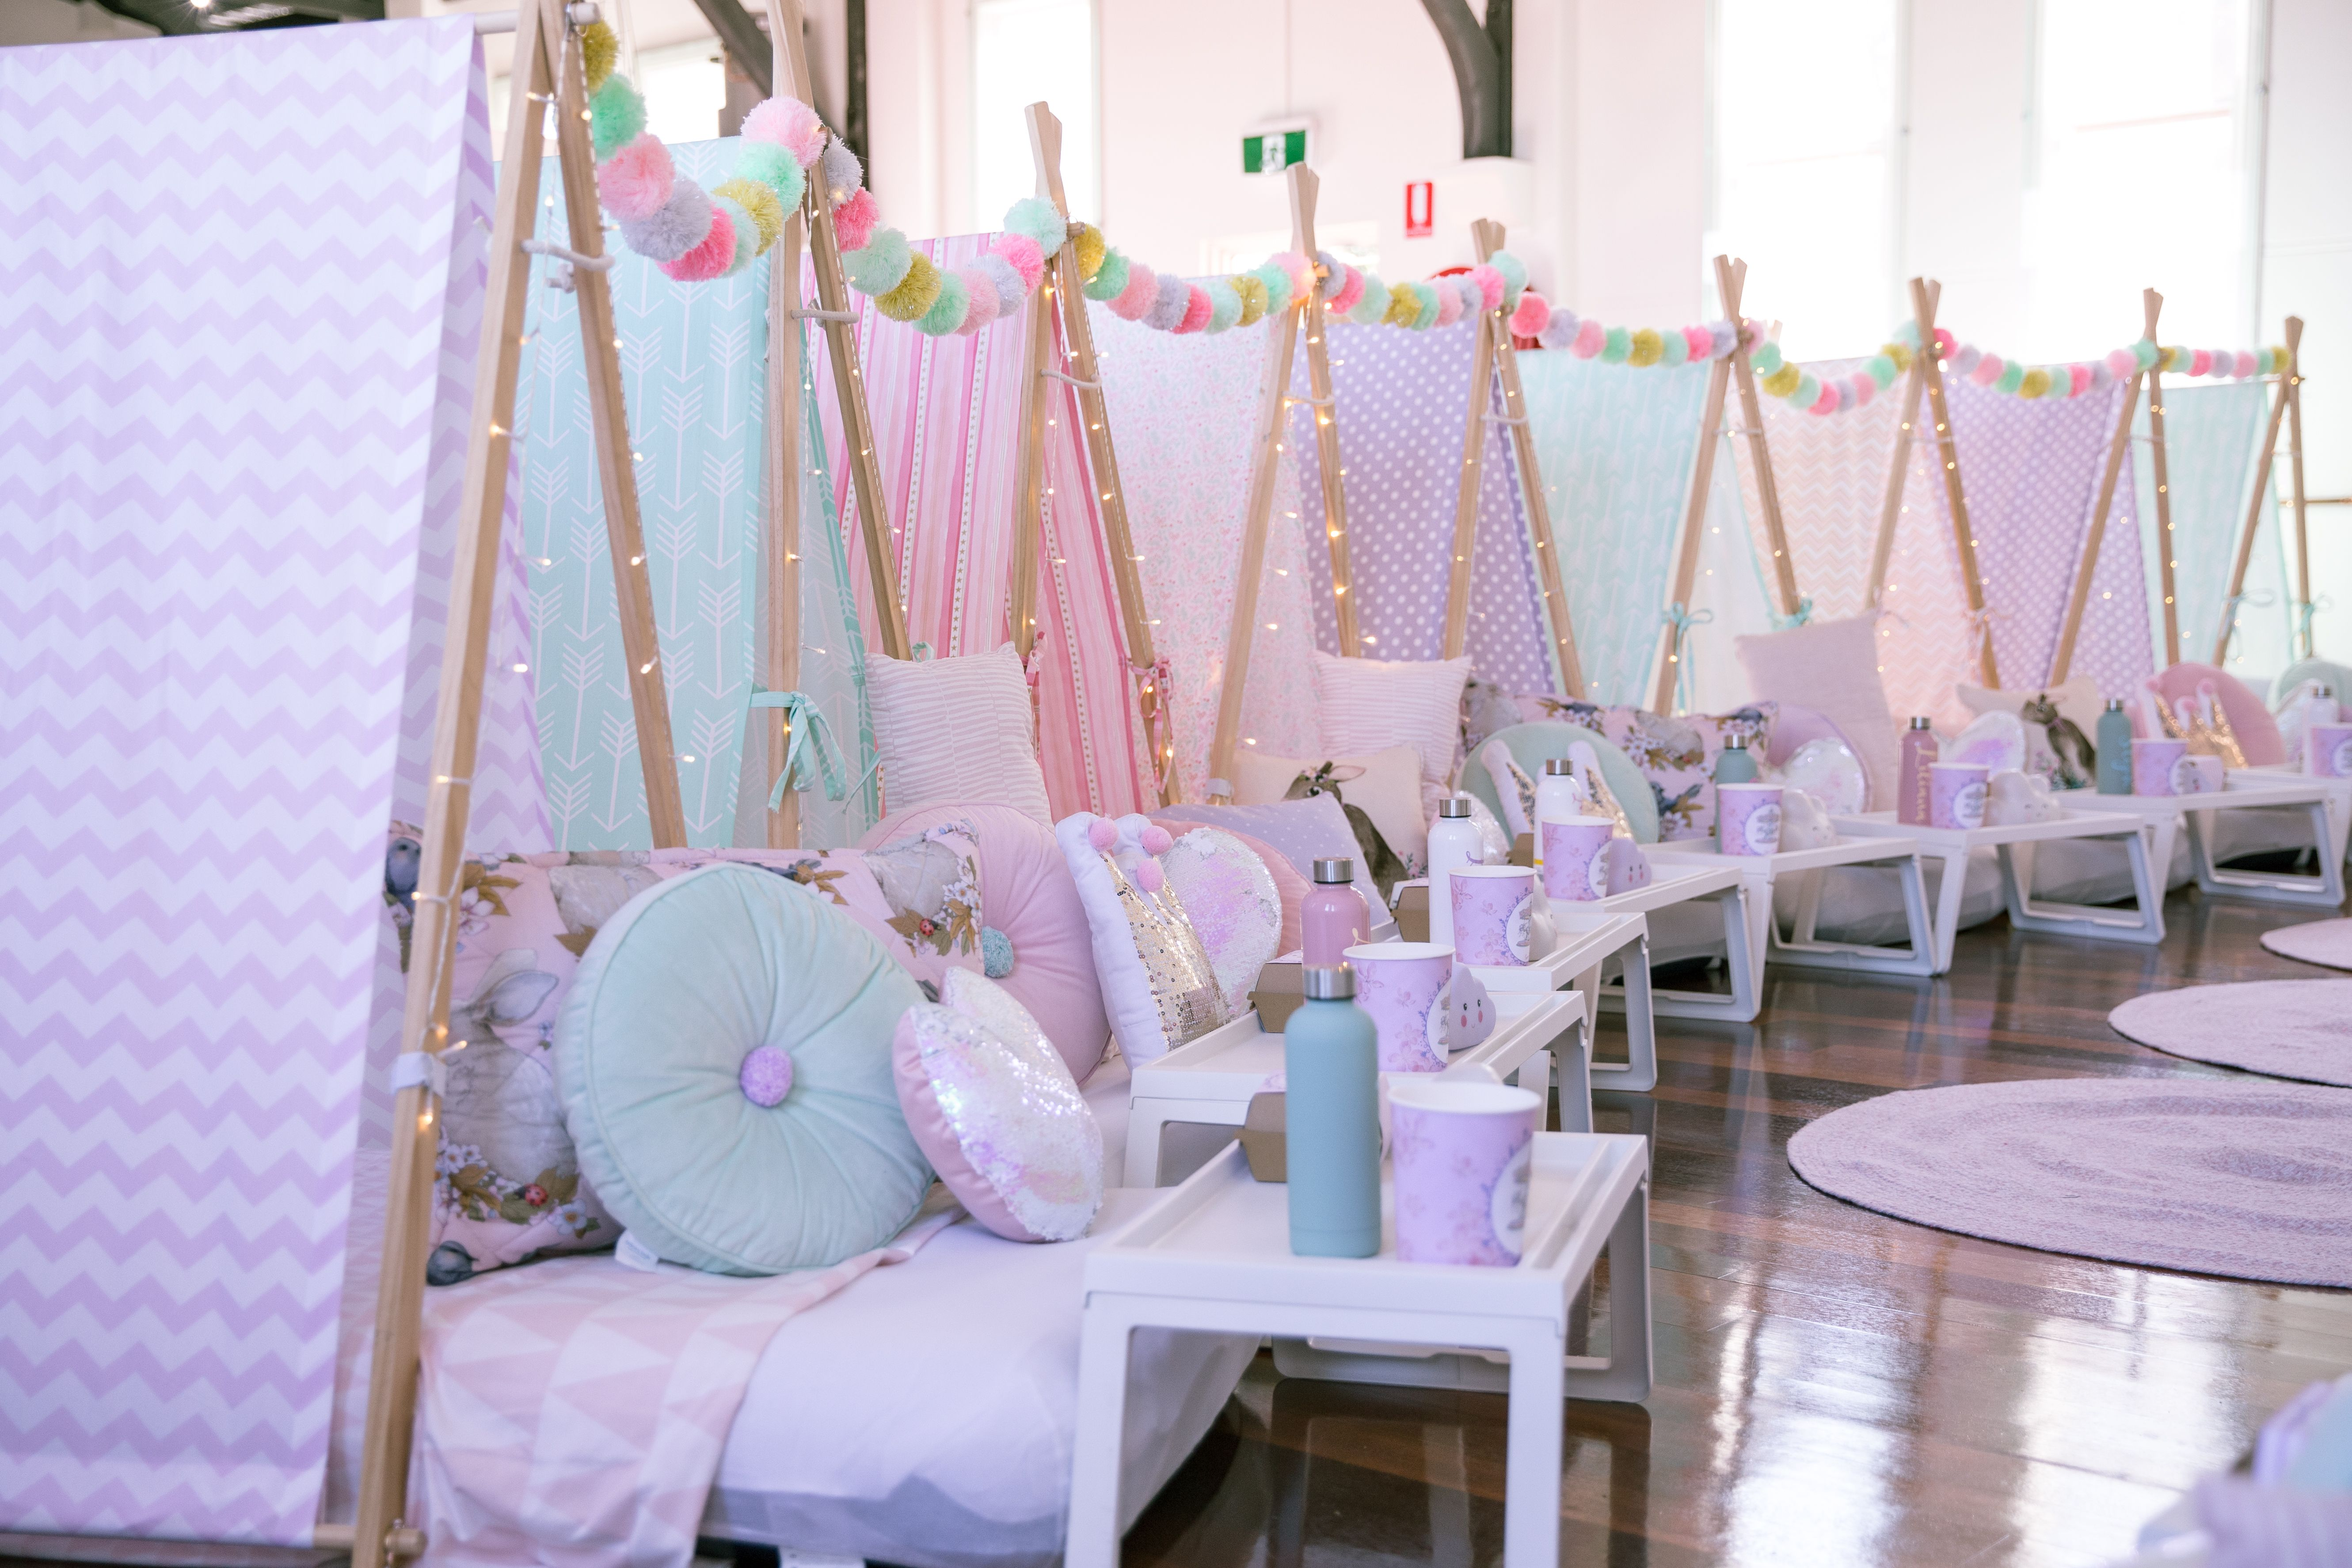 Event Styling by Cookie Queen Kitsch'n in Sydney. Teepees